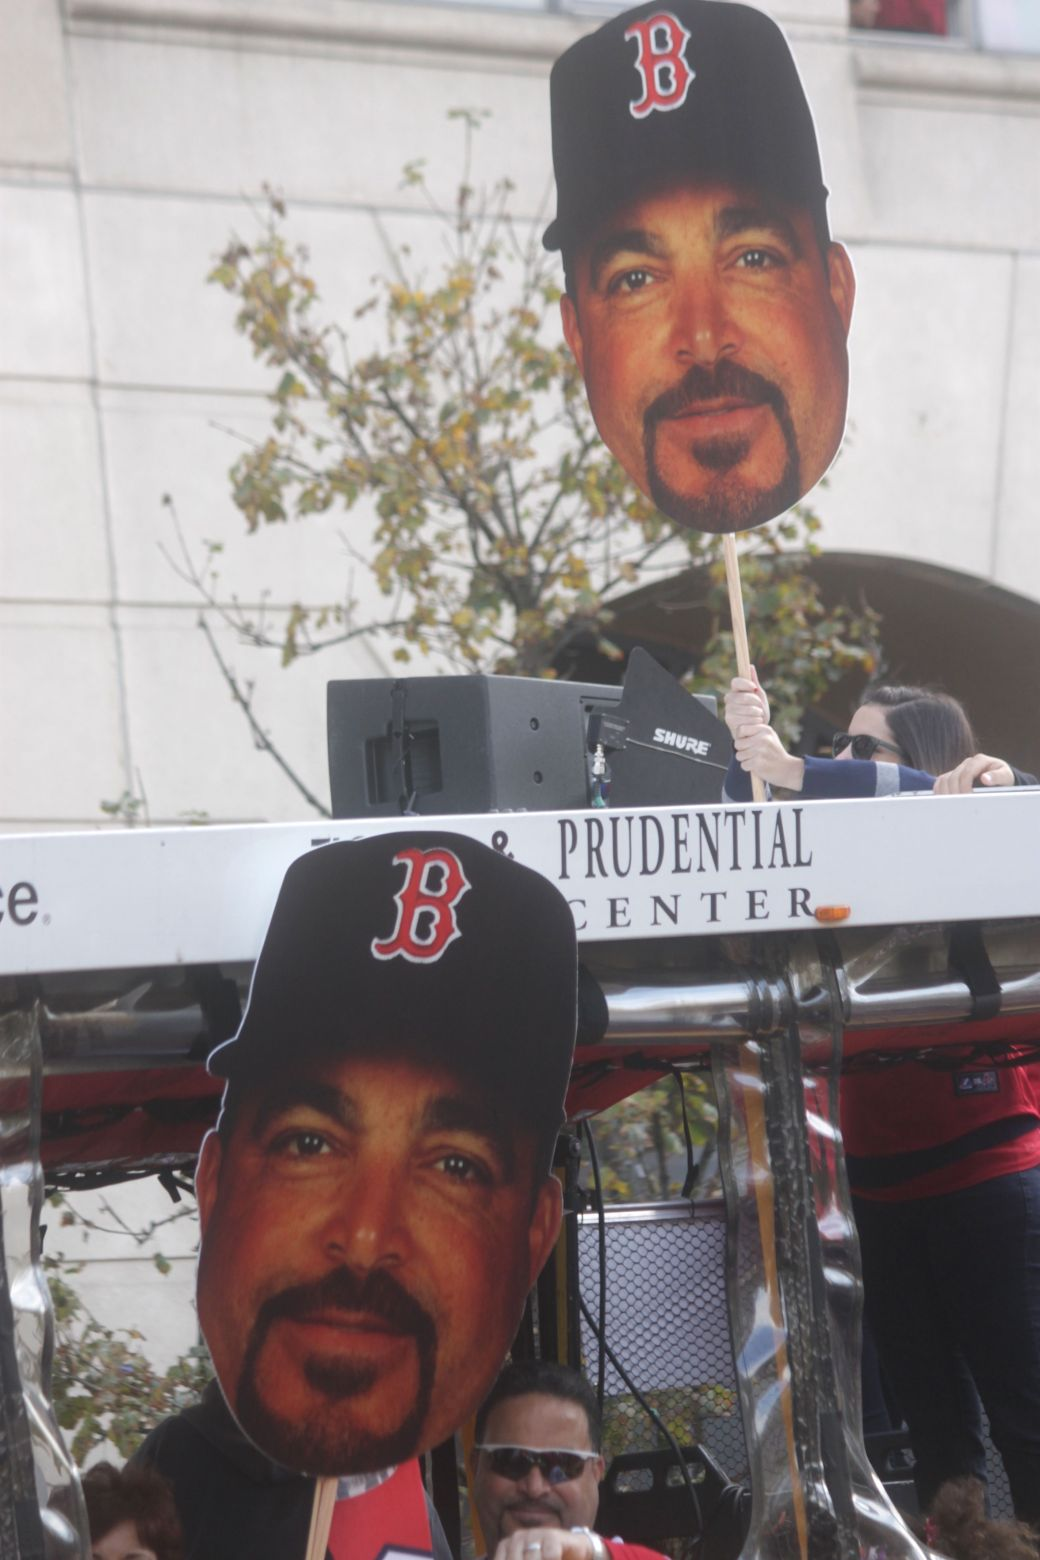 boston red sox world series celebration 2013 face signs